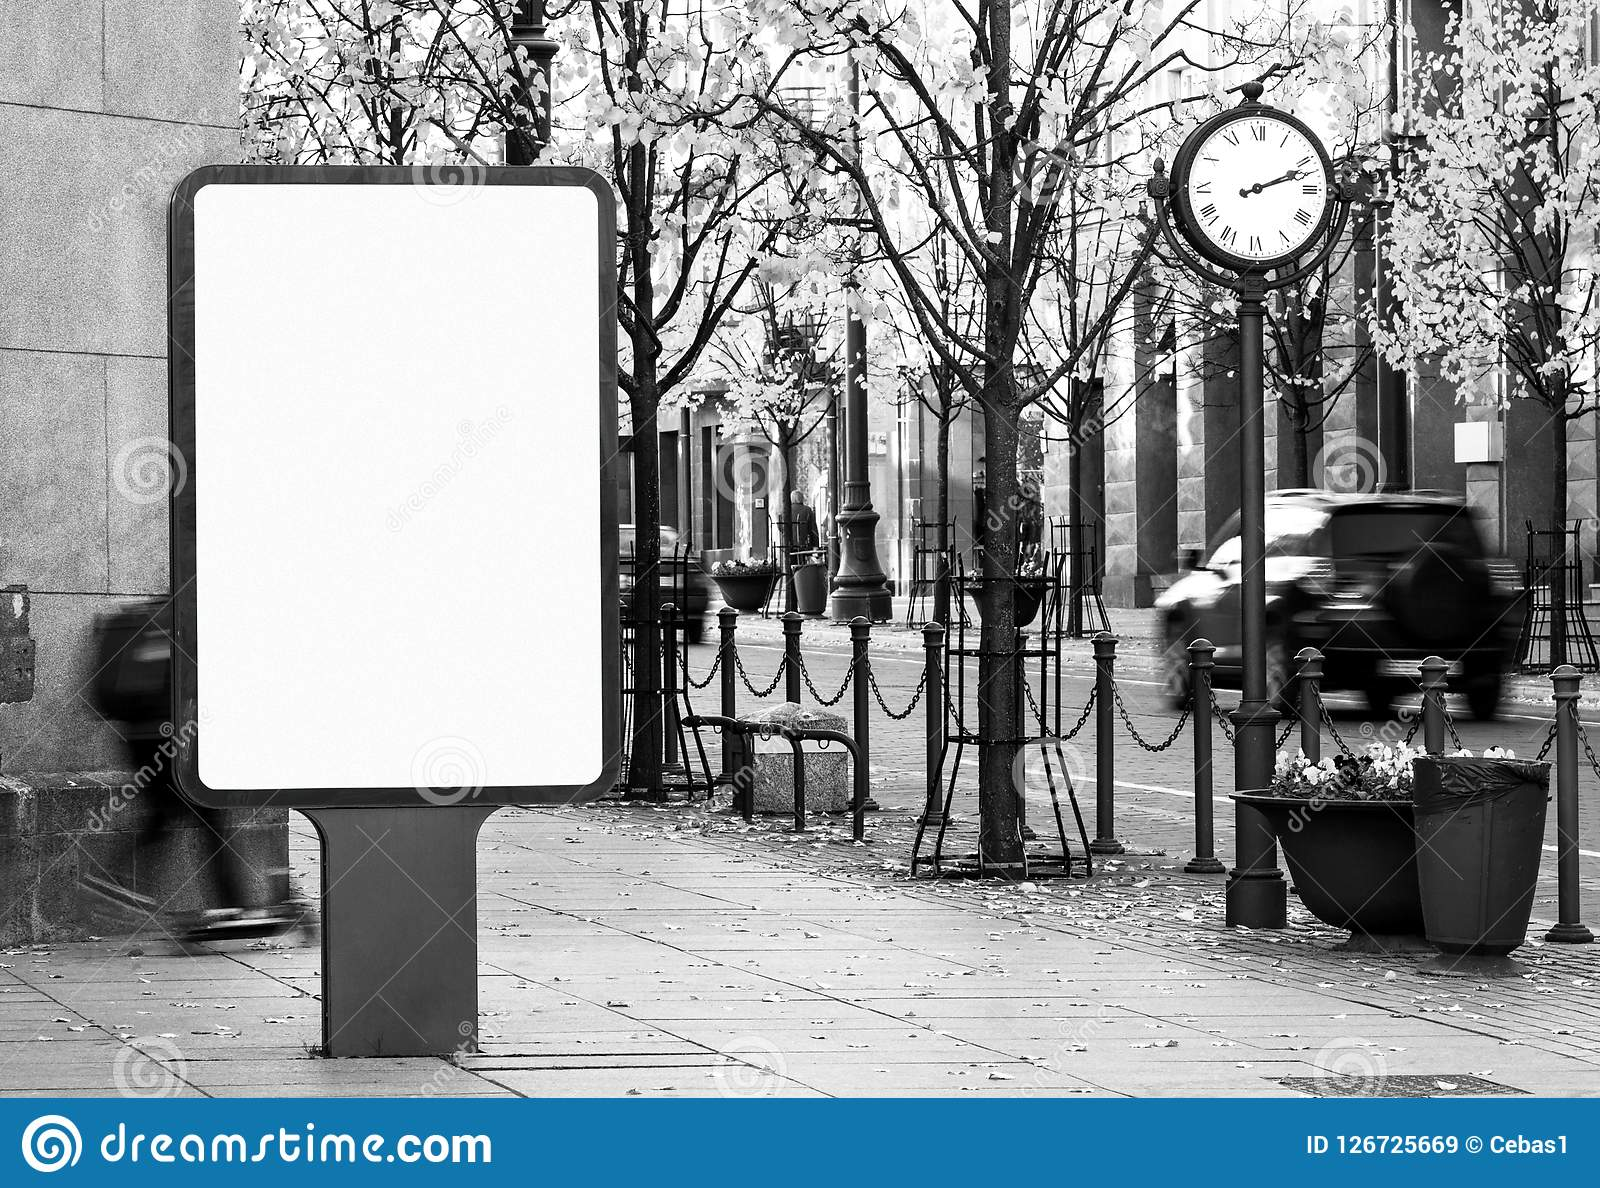 Black and white outdoor billboard mockup on city street